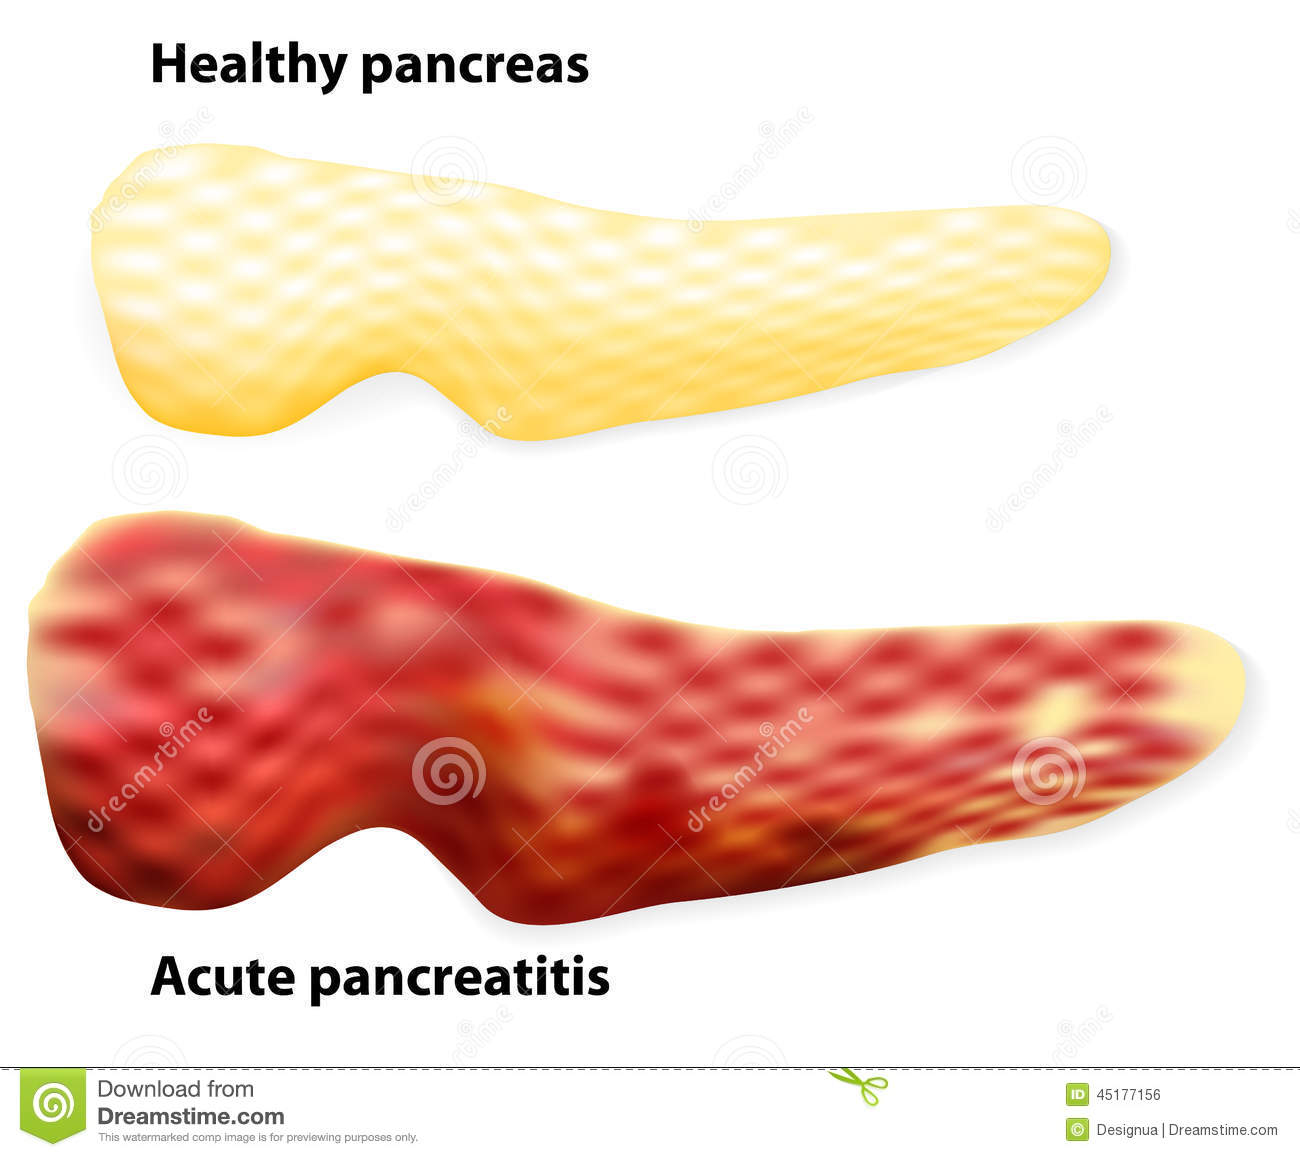 Pancreatitis The Differences Between Healthy Pancreas And